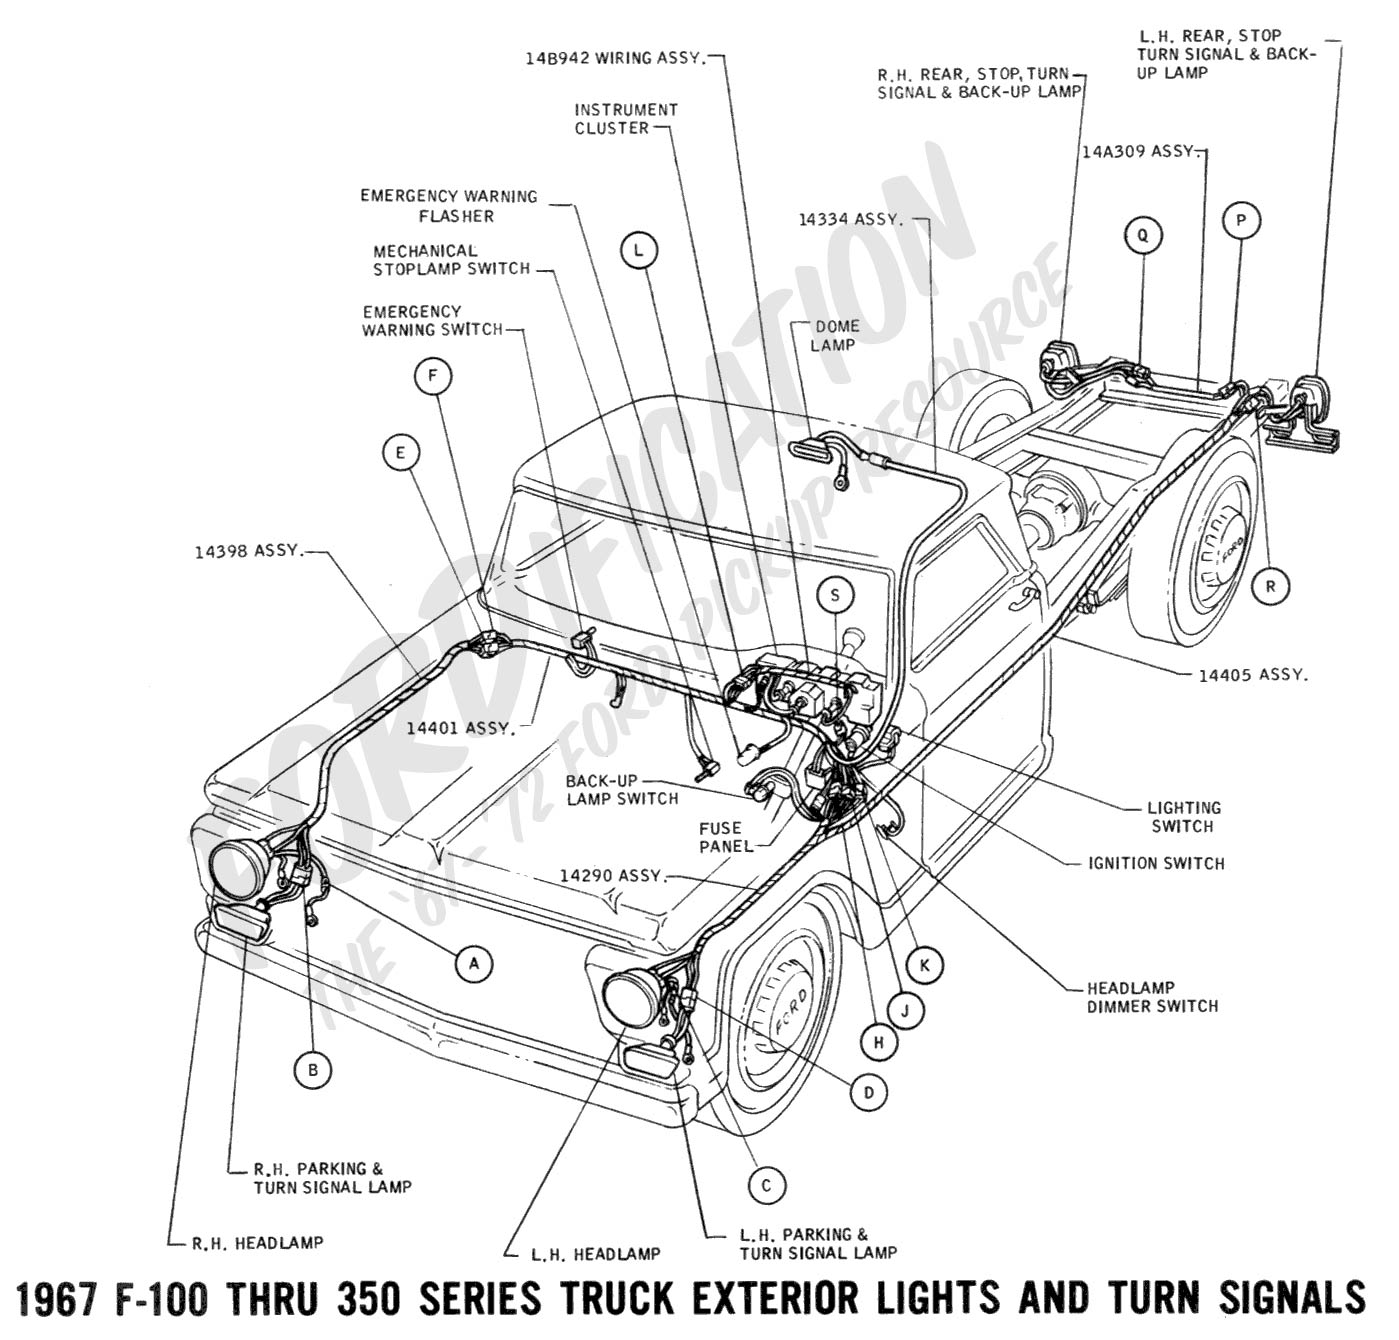 2002 f350 wiring schematic turn signals daily update wiring diagram \u2022 f350 diesel wiring 2002 f350 wiring schematic turn signals images gallery ford truck technical drawings and schematics section h